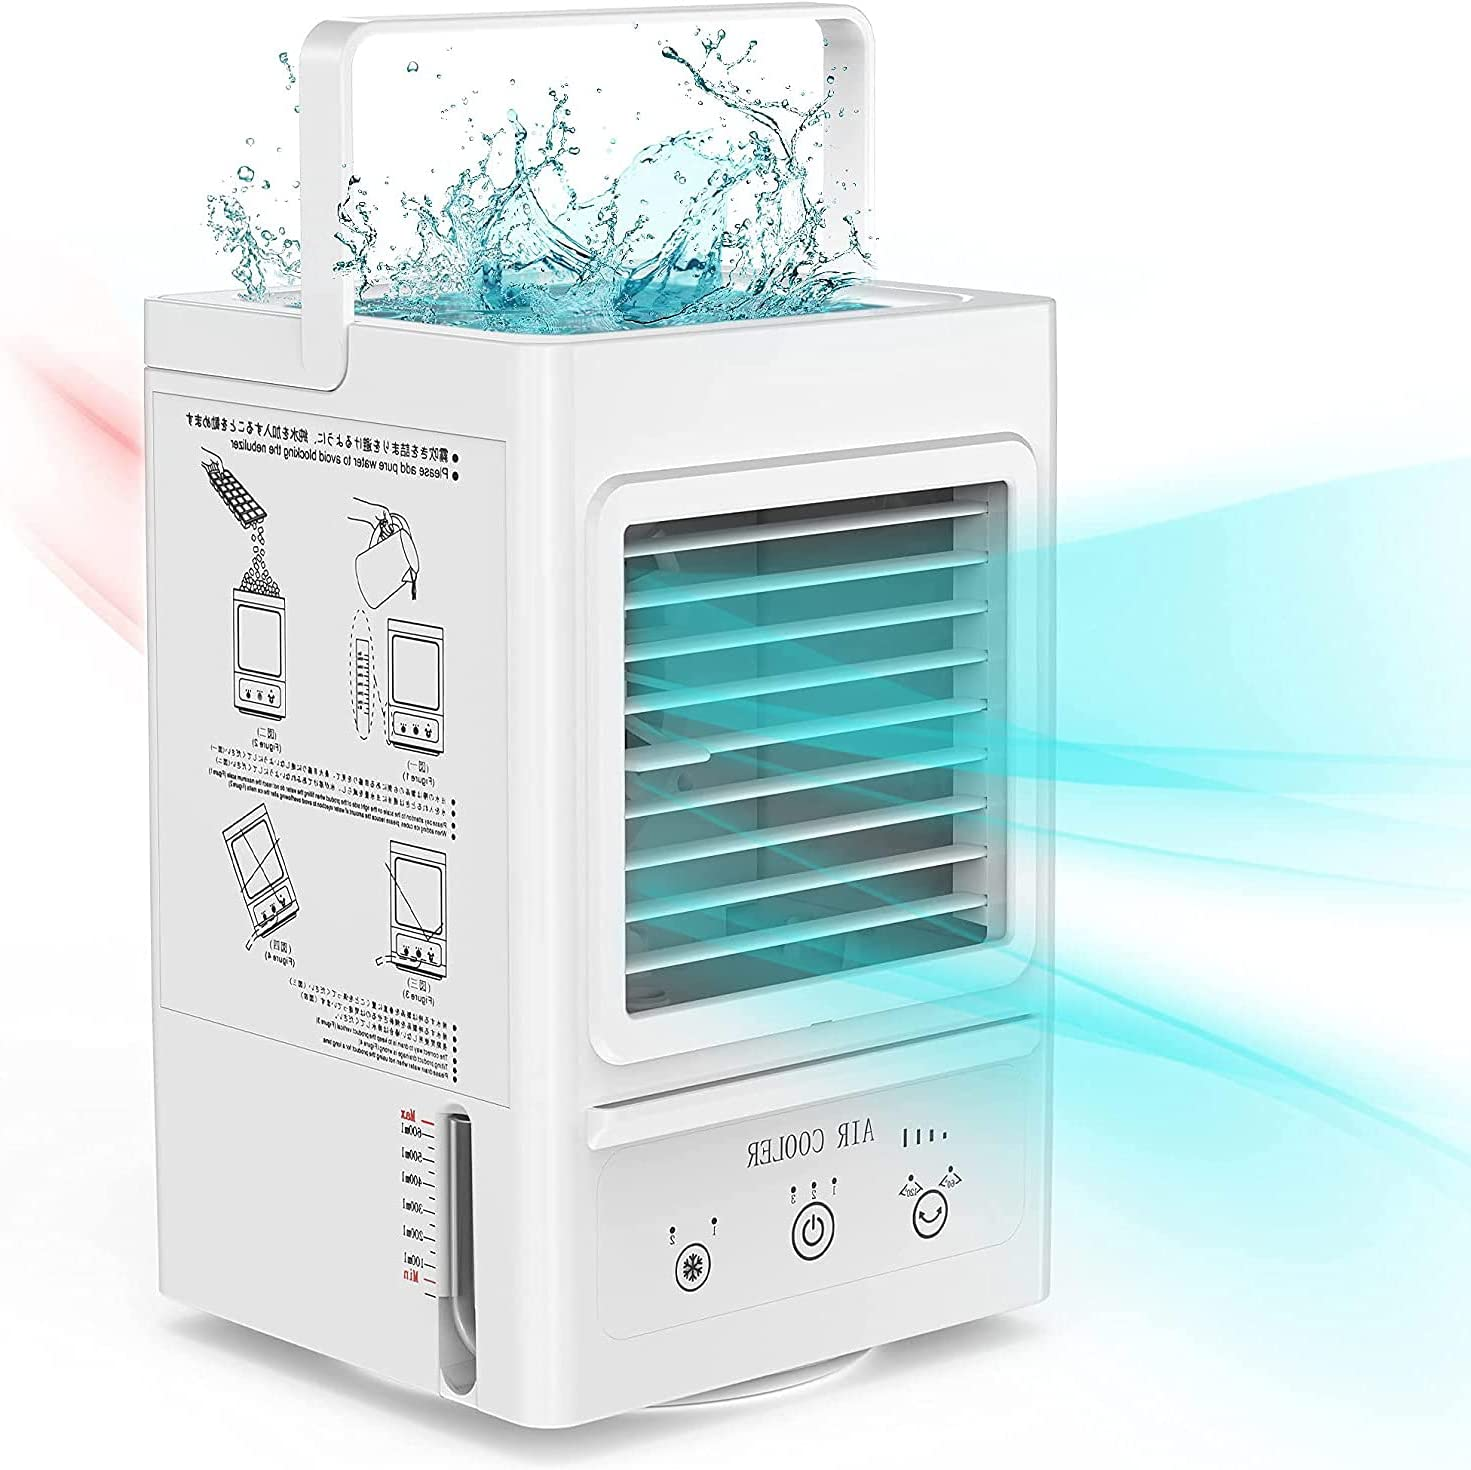 Portable Air Conditioner, Rechargeable Battery Operated Evaporative Air Cooler, Auto Oscillation 700ml Water Tank, Perfect for Home Bedroom Office Outdoor